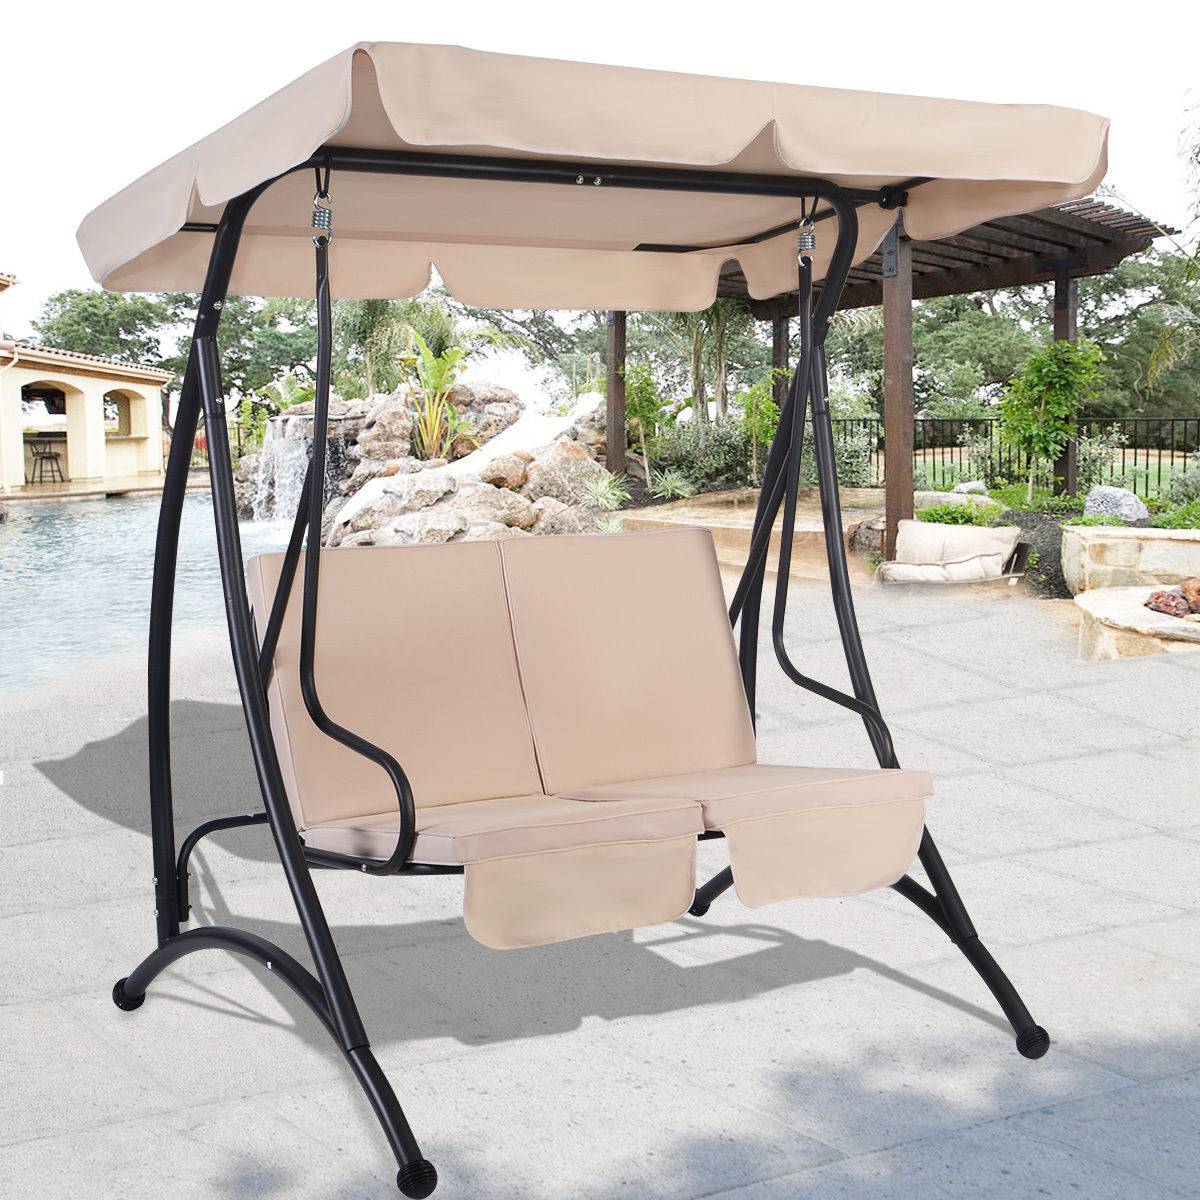 Ordinaire Costway Beige 2 Person Canopy Swing Chair Patio Hammock Seat Cushioned  Furniture Steel